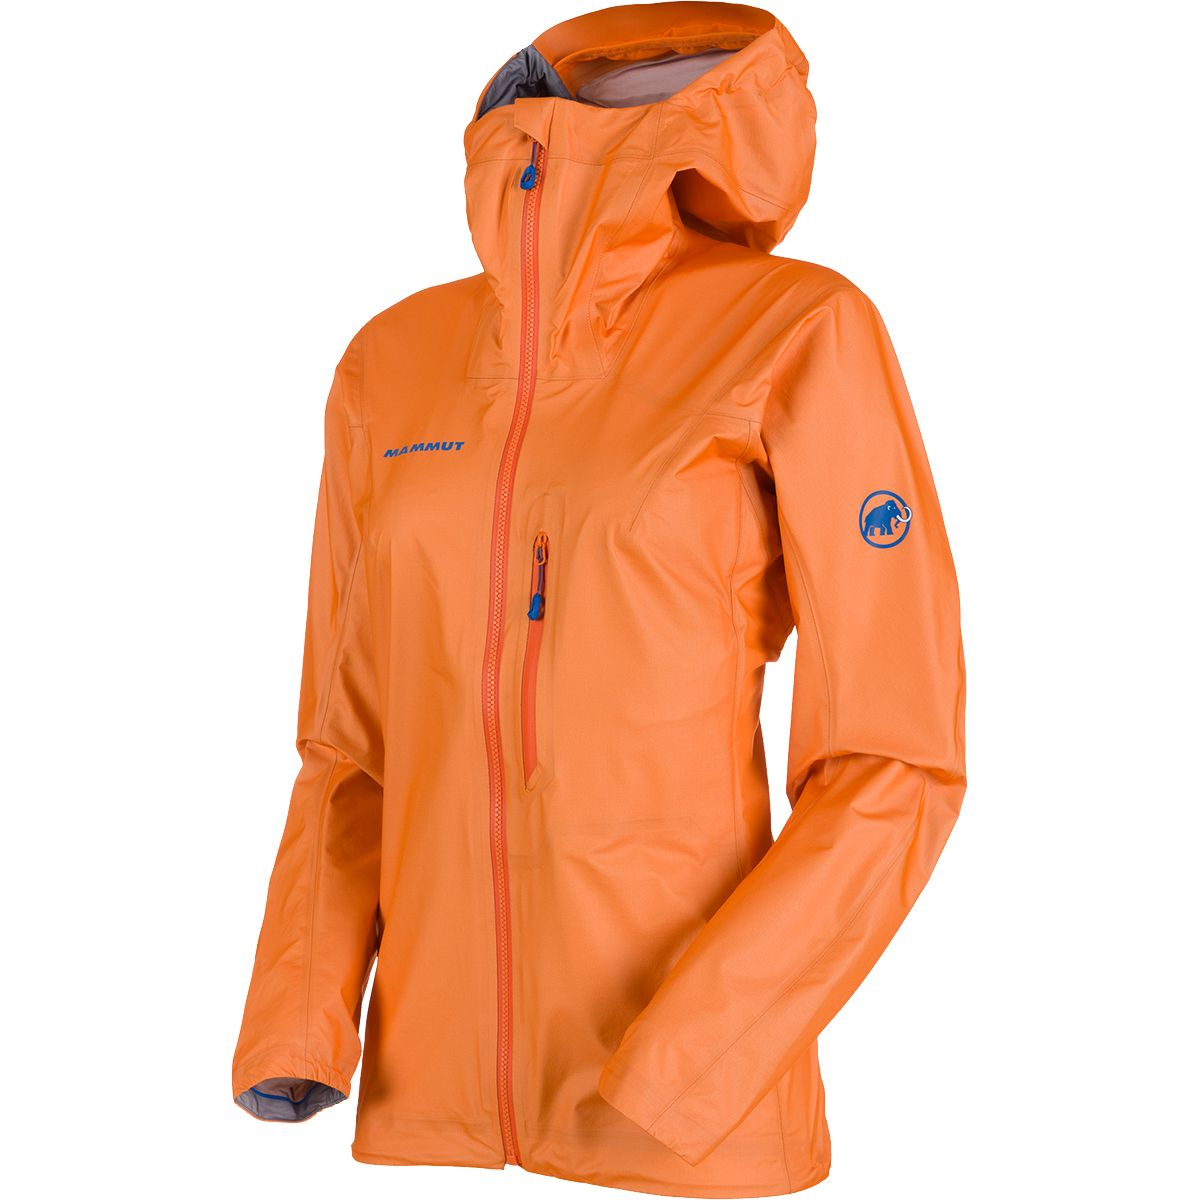 Mammut Damen Nordwand Light HS Hooded Jacke (Größe L, Orange) | Hardshelljacken & Regenjacken > Damen